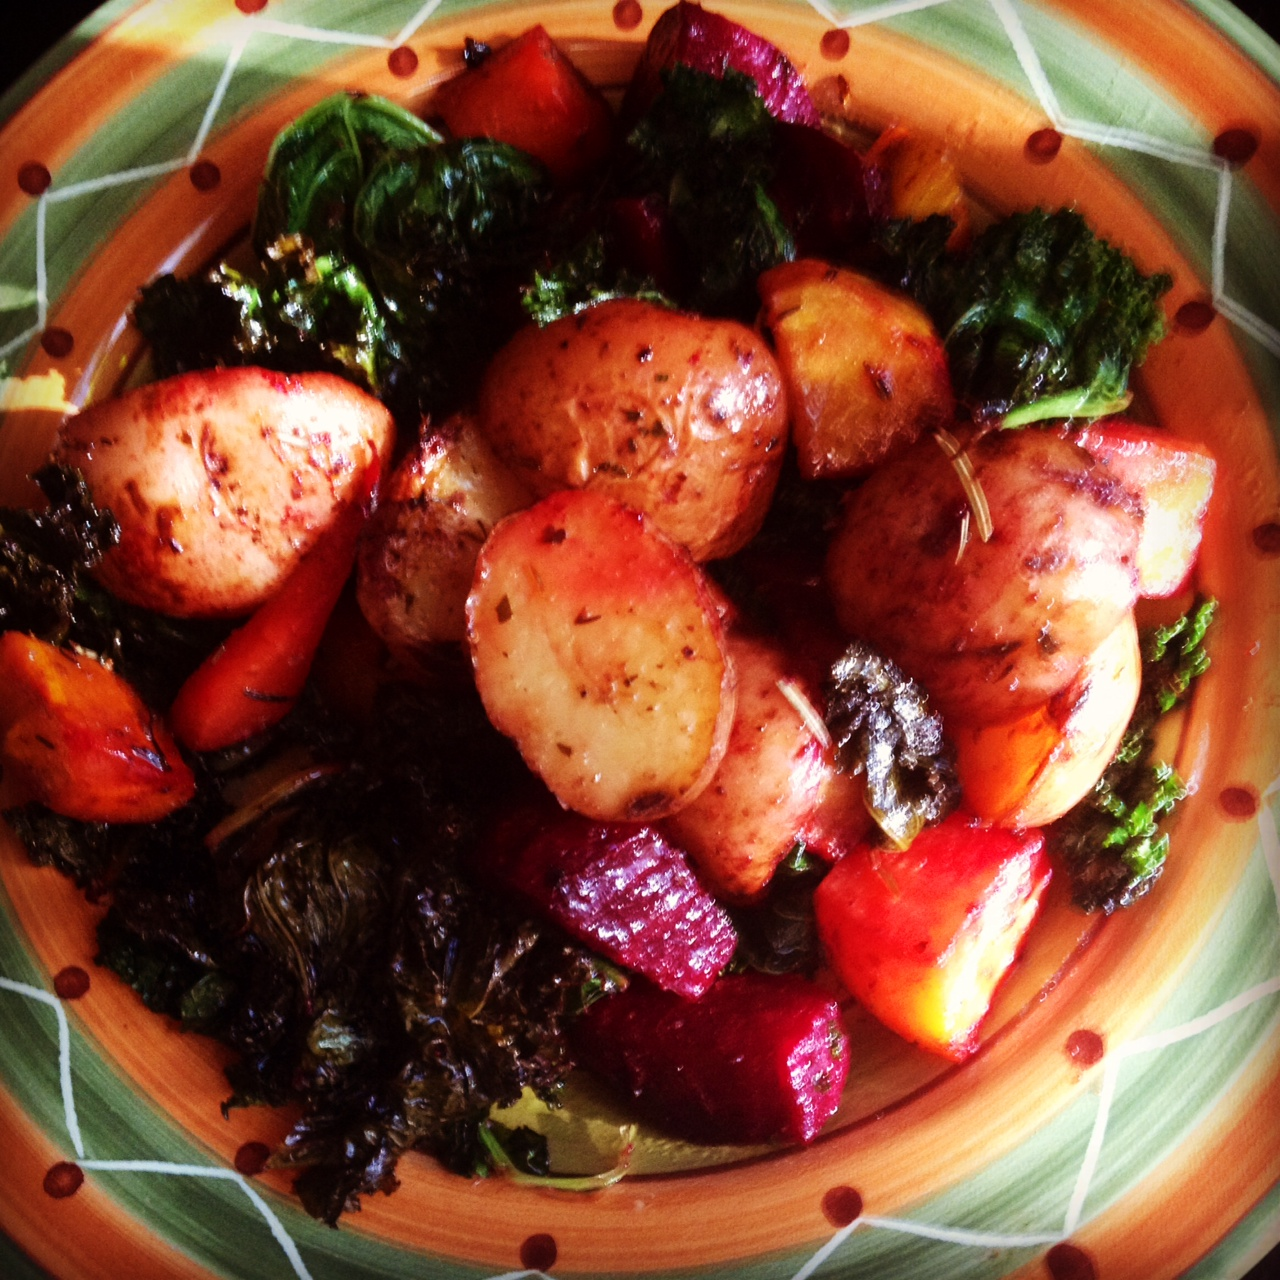 Roasted Root Veggies with Kale